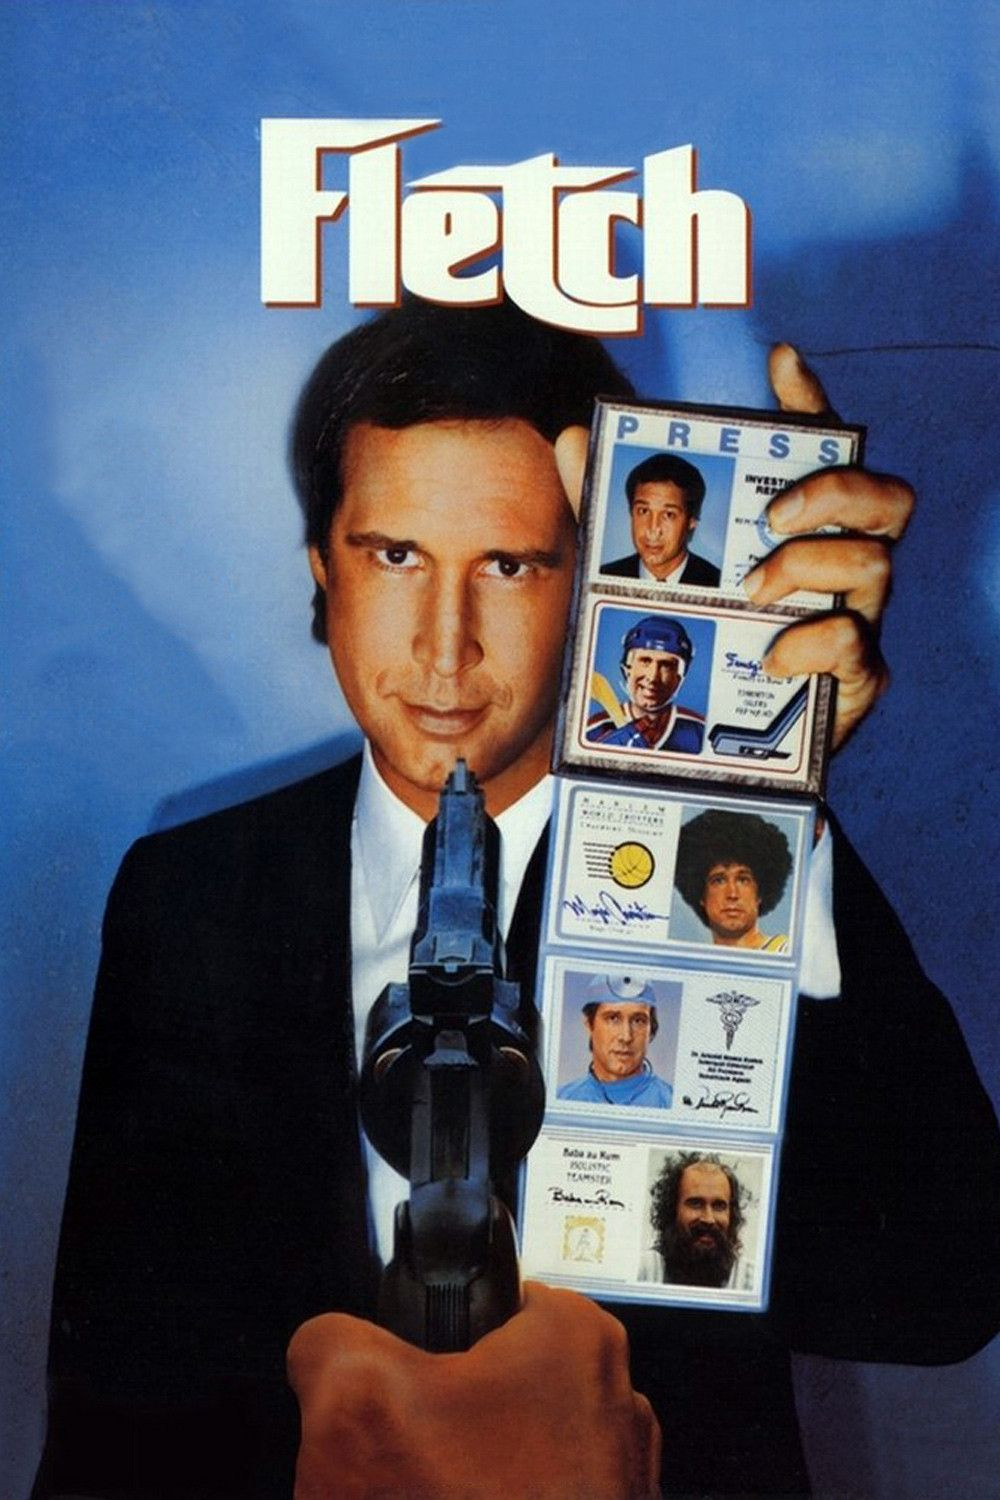 fletch possibly the movie with the most oneliners in it